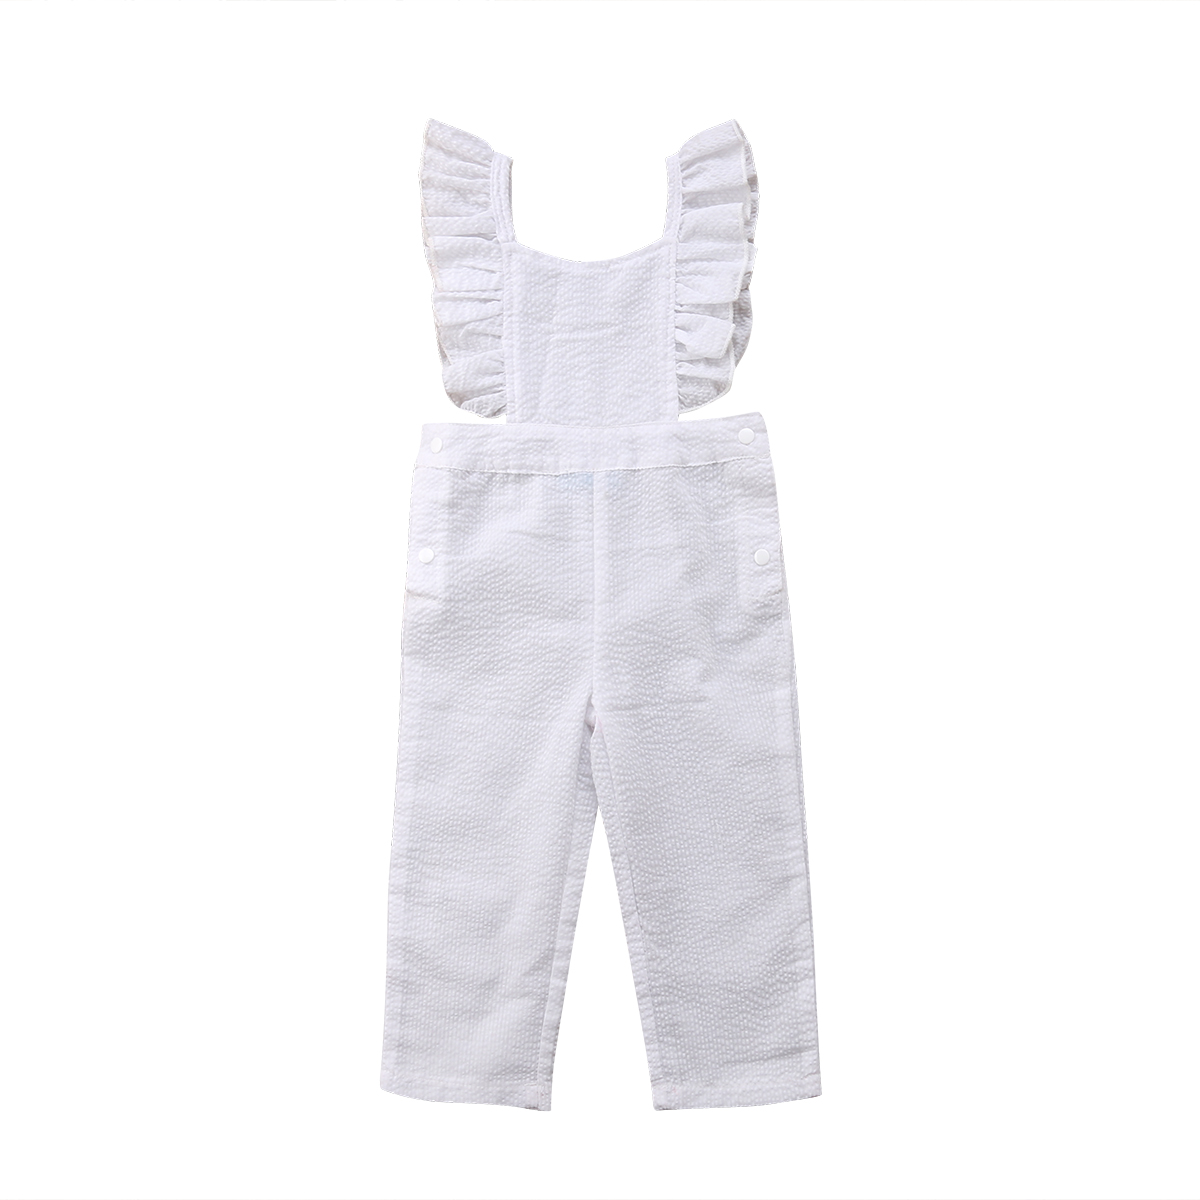 Emmababy Cute Infant Toddler Baby Girl Ruffle Romper Pullover Jumpsuit Playsuit Casual Summer Clothes Outfit